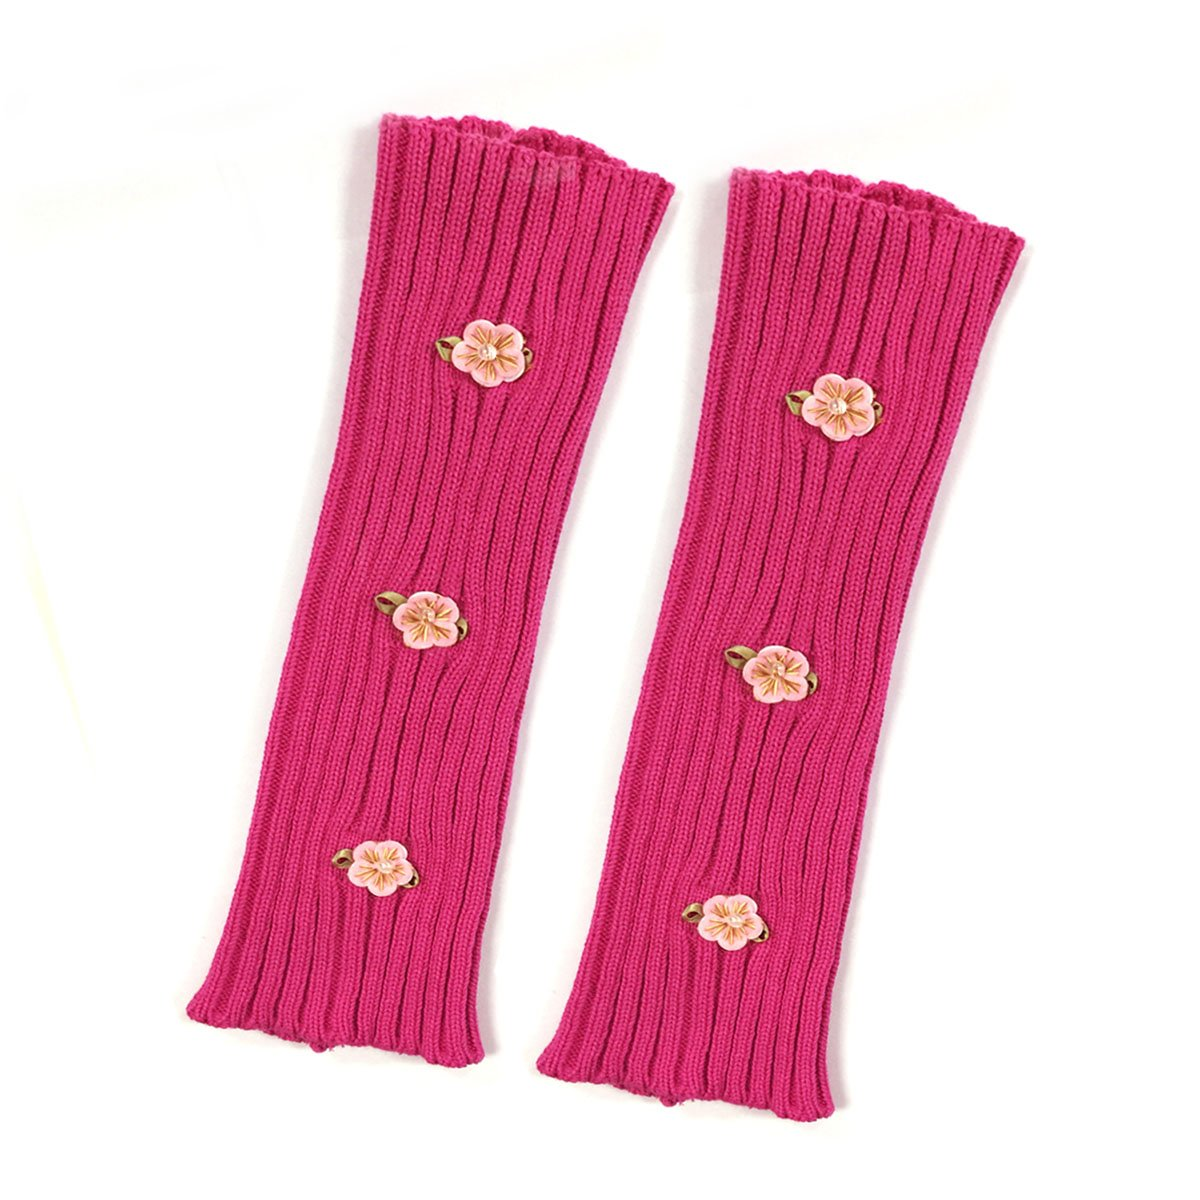 Bowbear Little Girls Ribbed Leg Warmers with Floral Stitching, Hot Pink